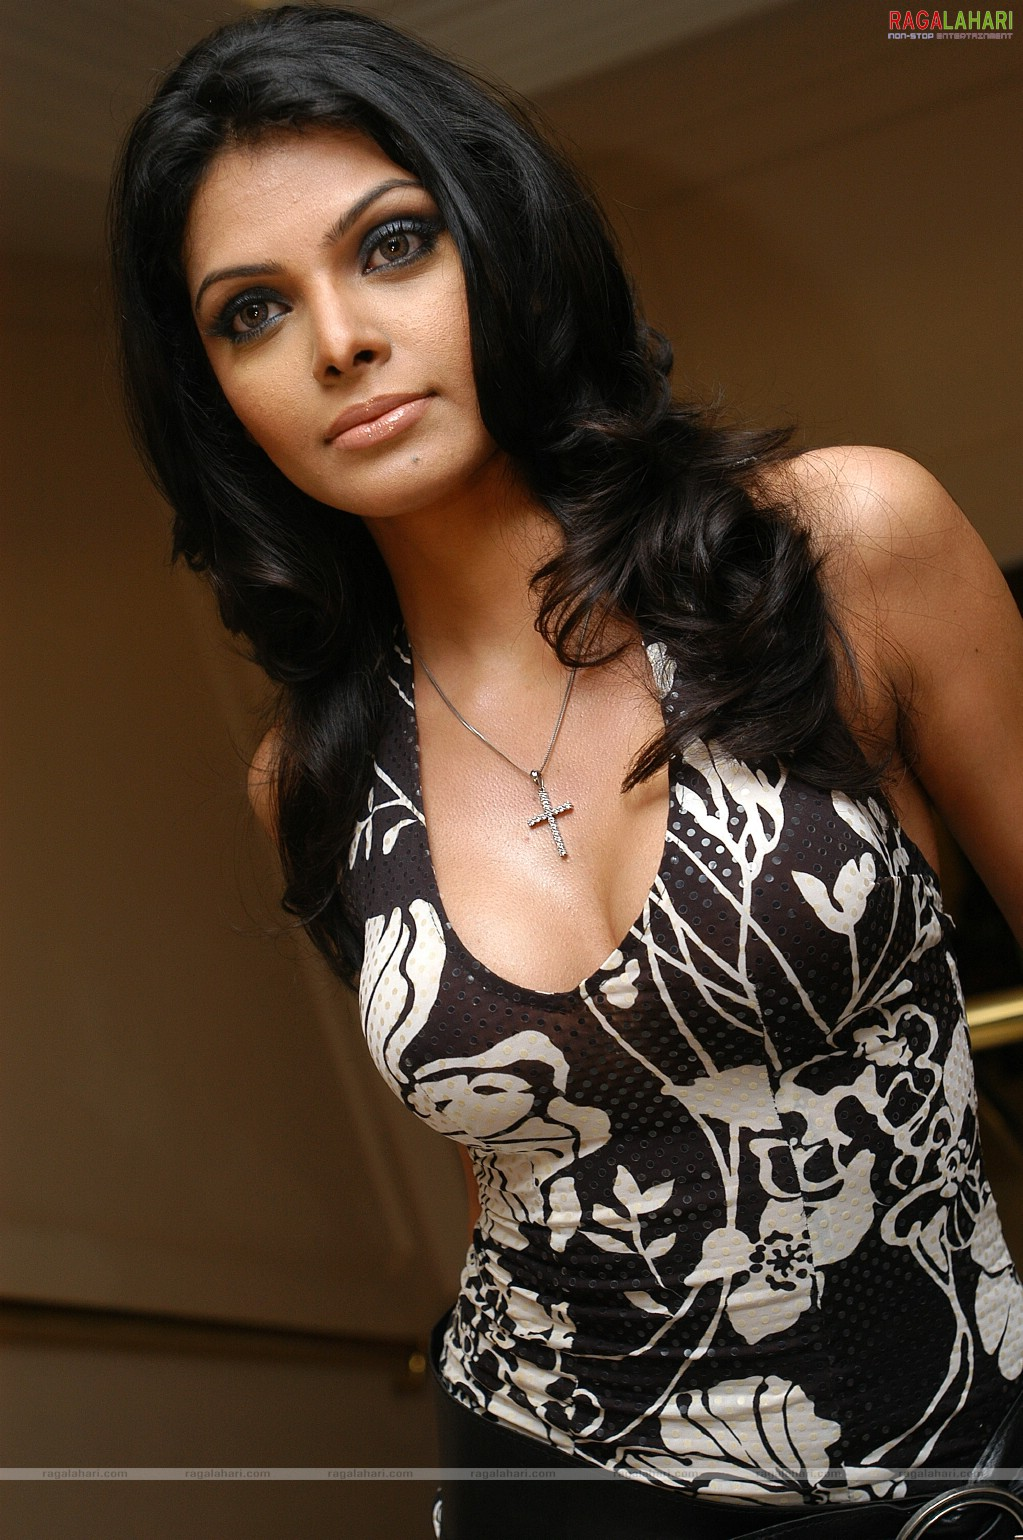 Discussion on this topic: Andrea Cerna, sherlyn-chopra-mona-chopra/